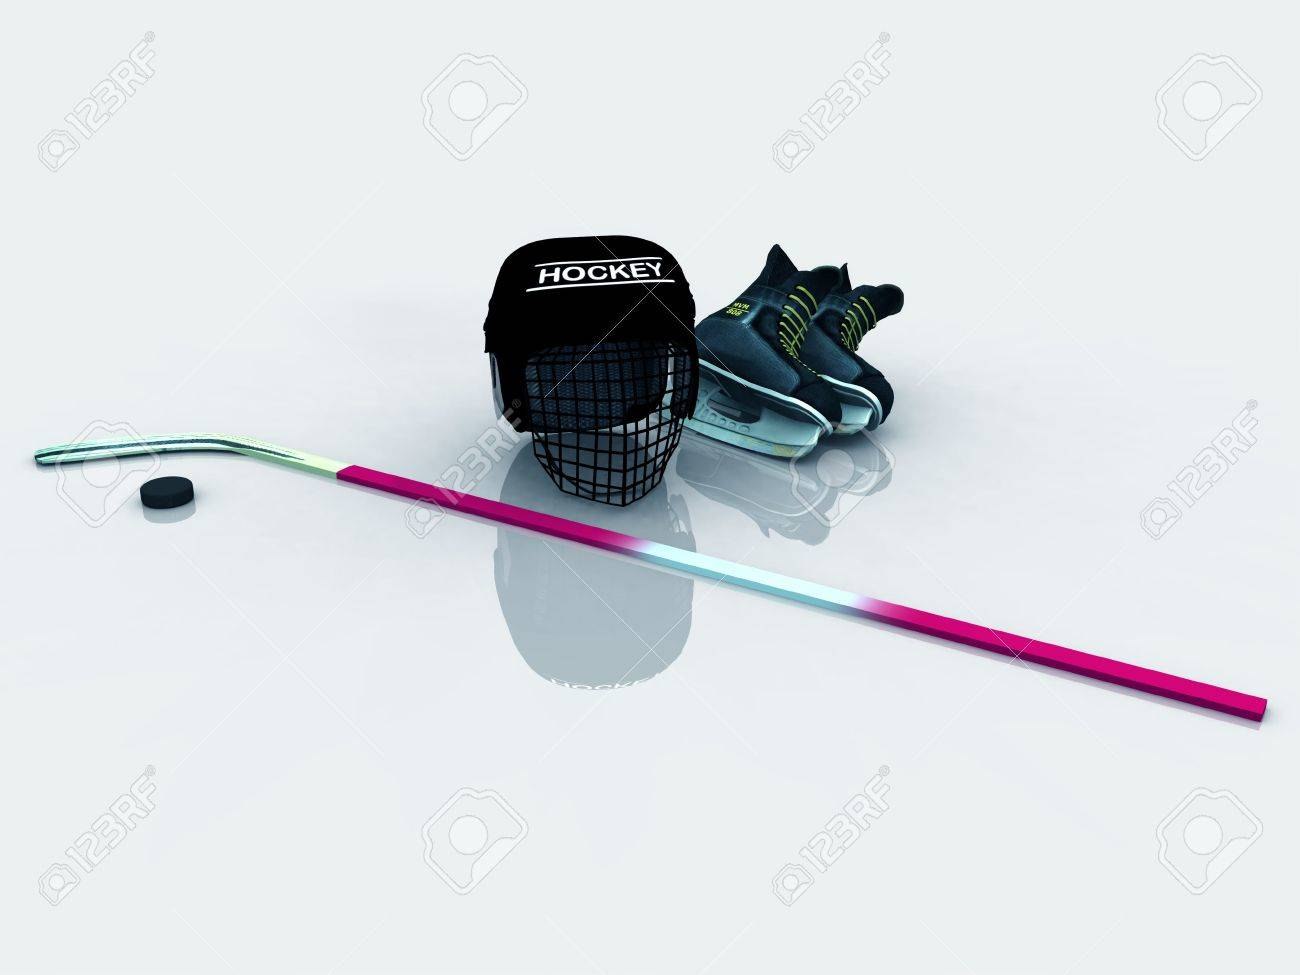 a collection of hockey gear helmet skates stick and puck